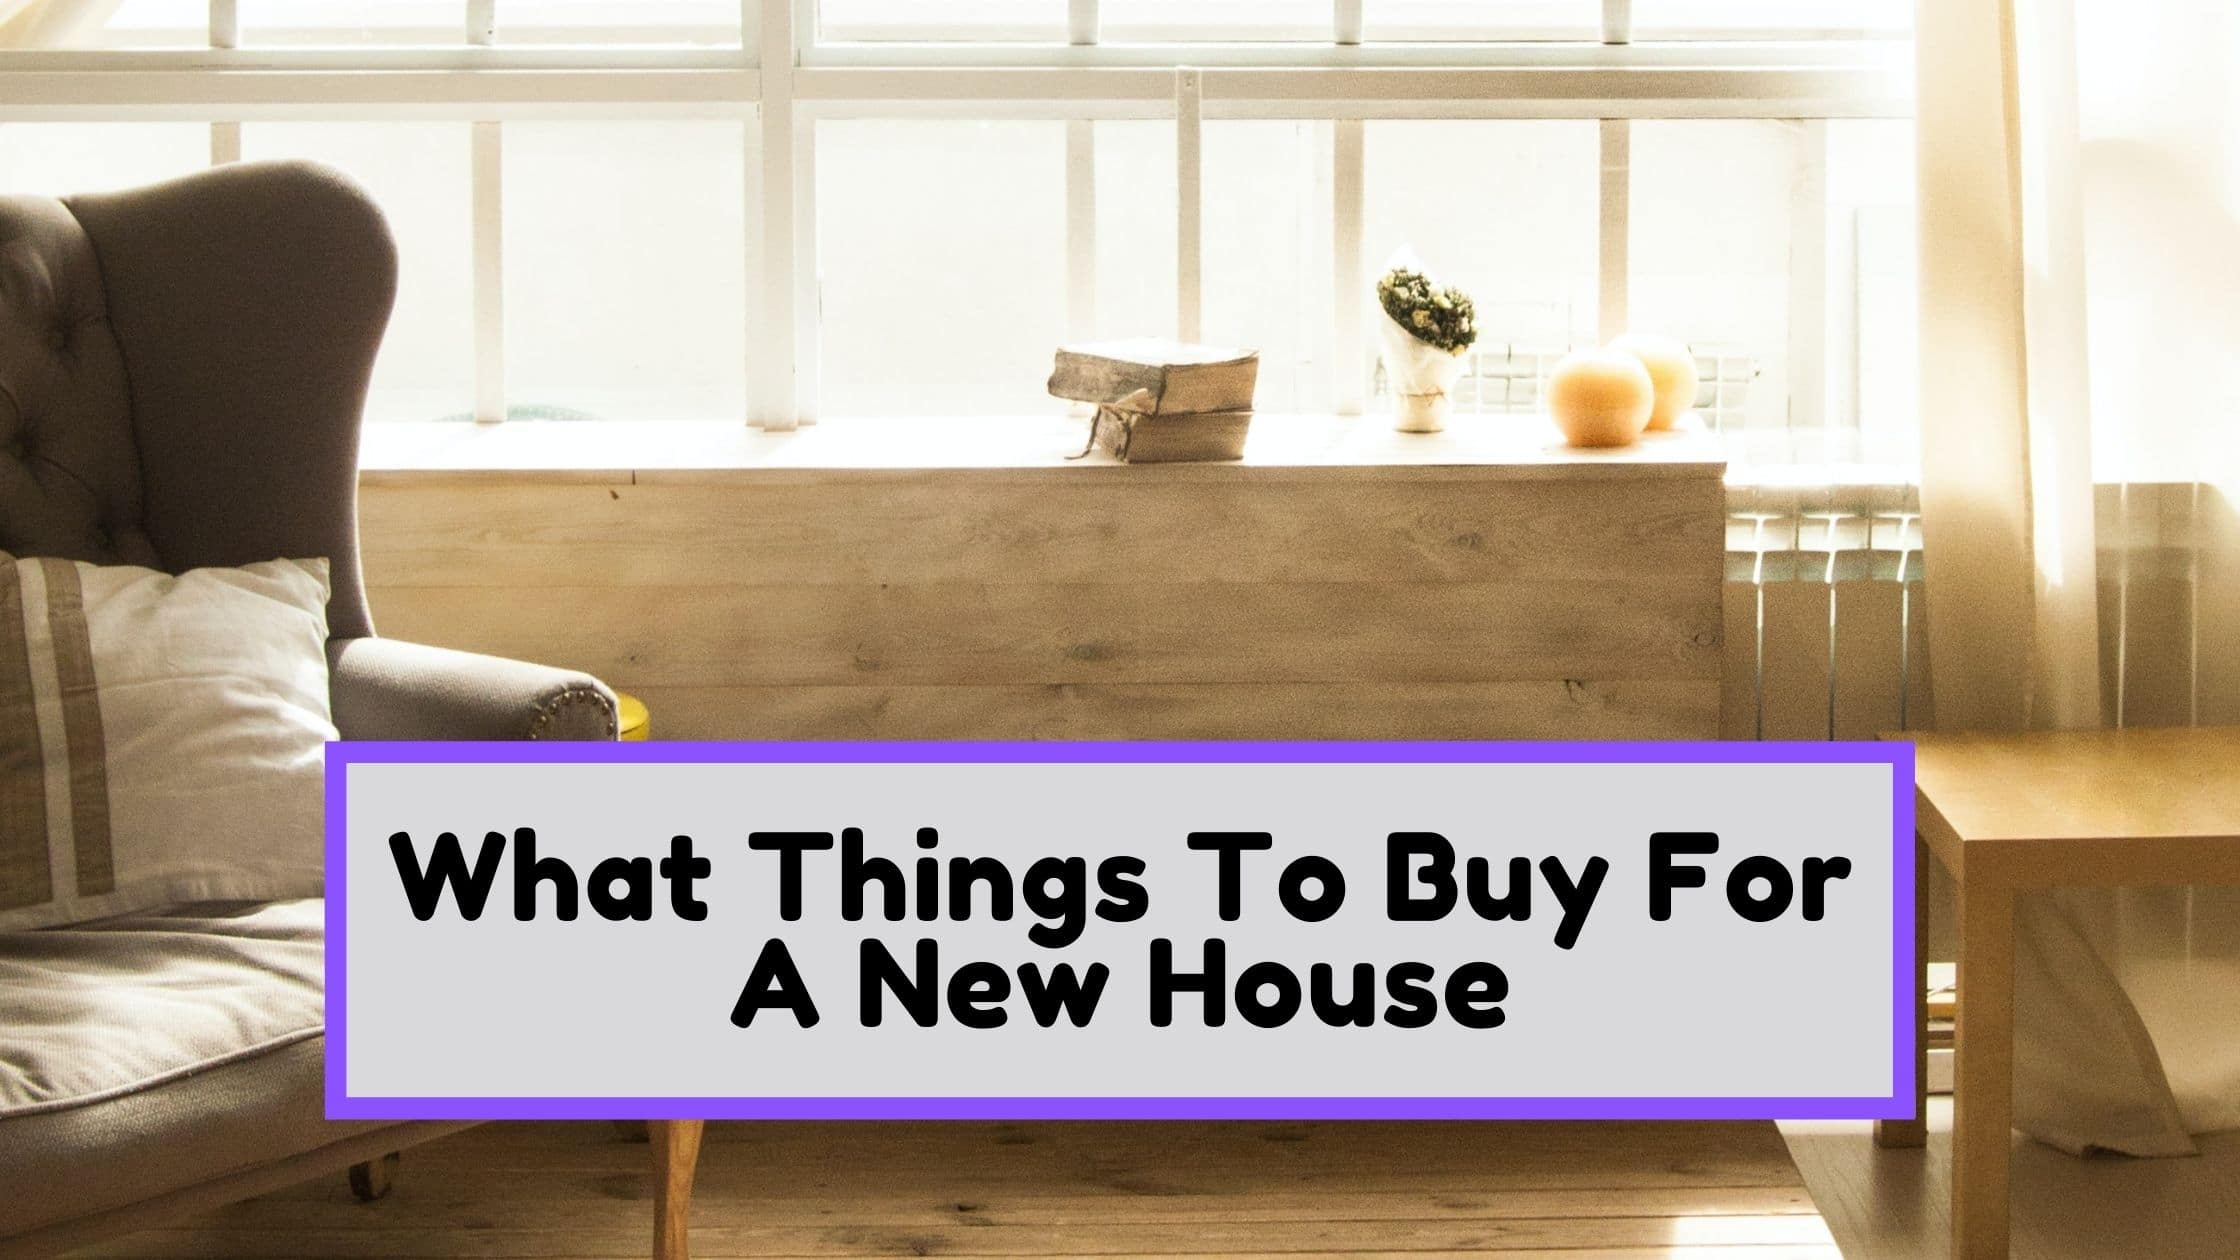 What things to buy for a new house